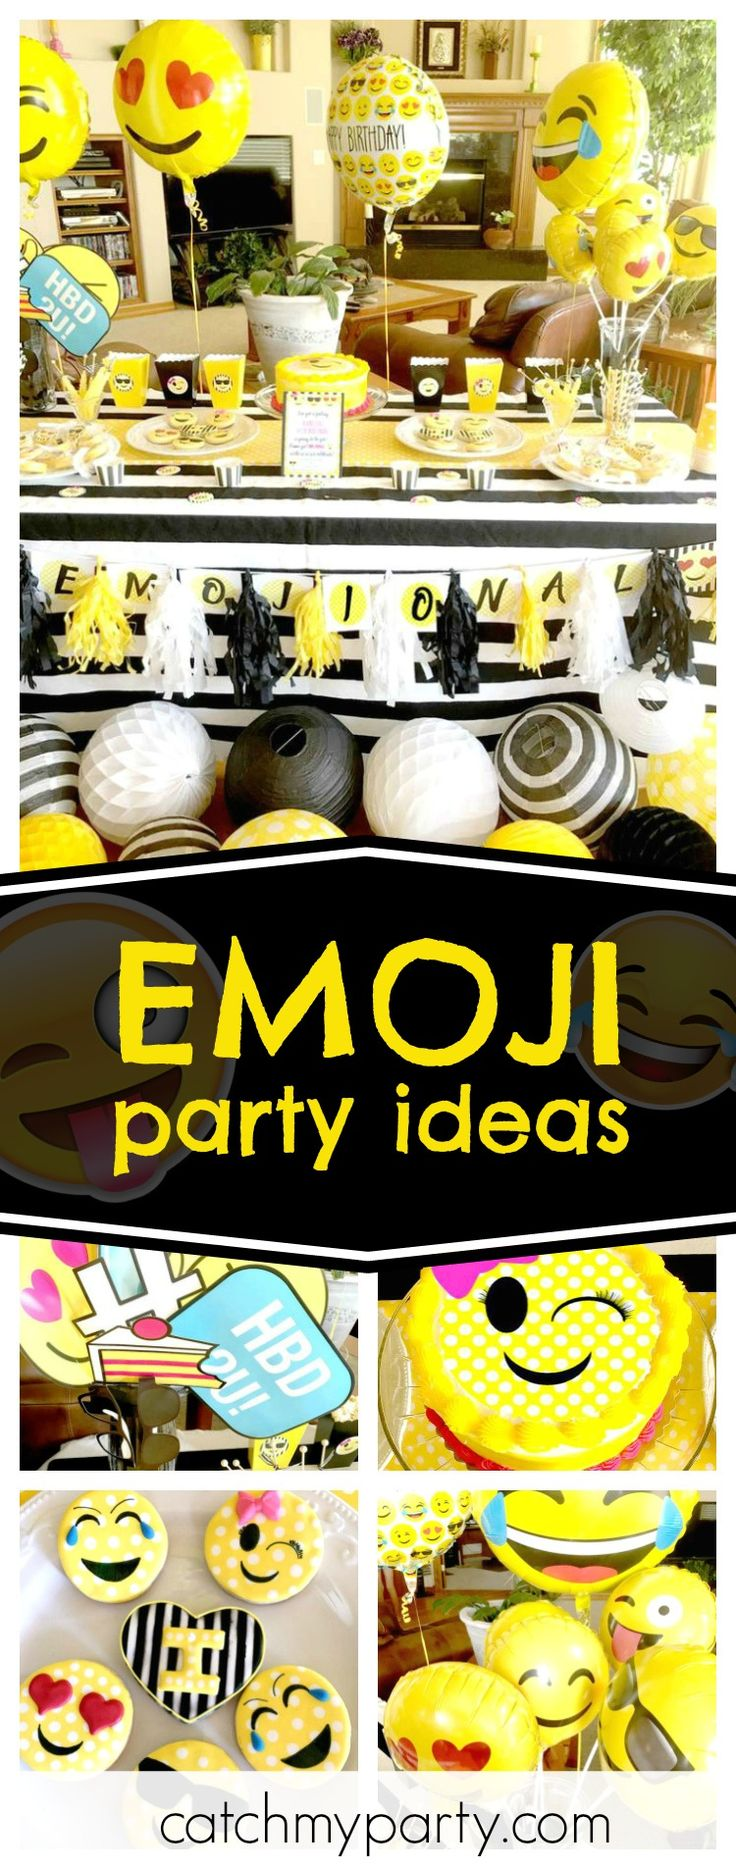 Check out this fun double digit Emoji birthday party. The decorations are awesome!! See more party ideas and share yours at CatchMyParty.com